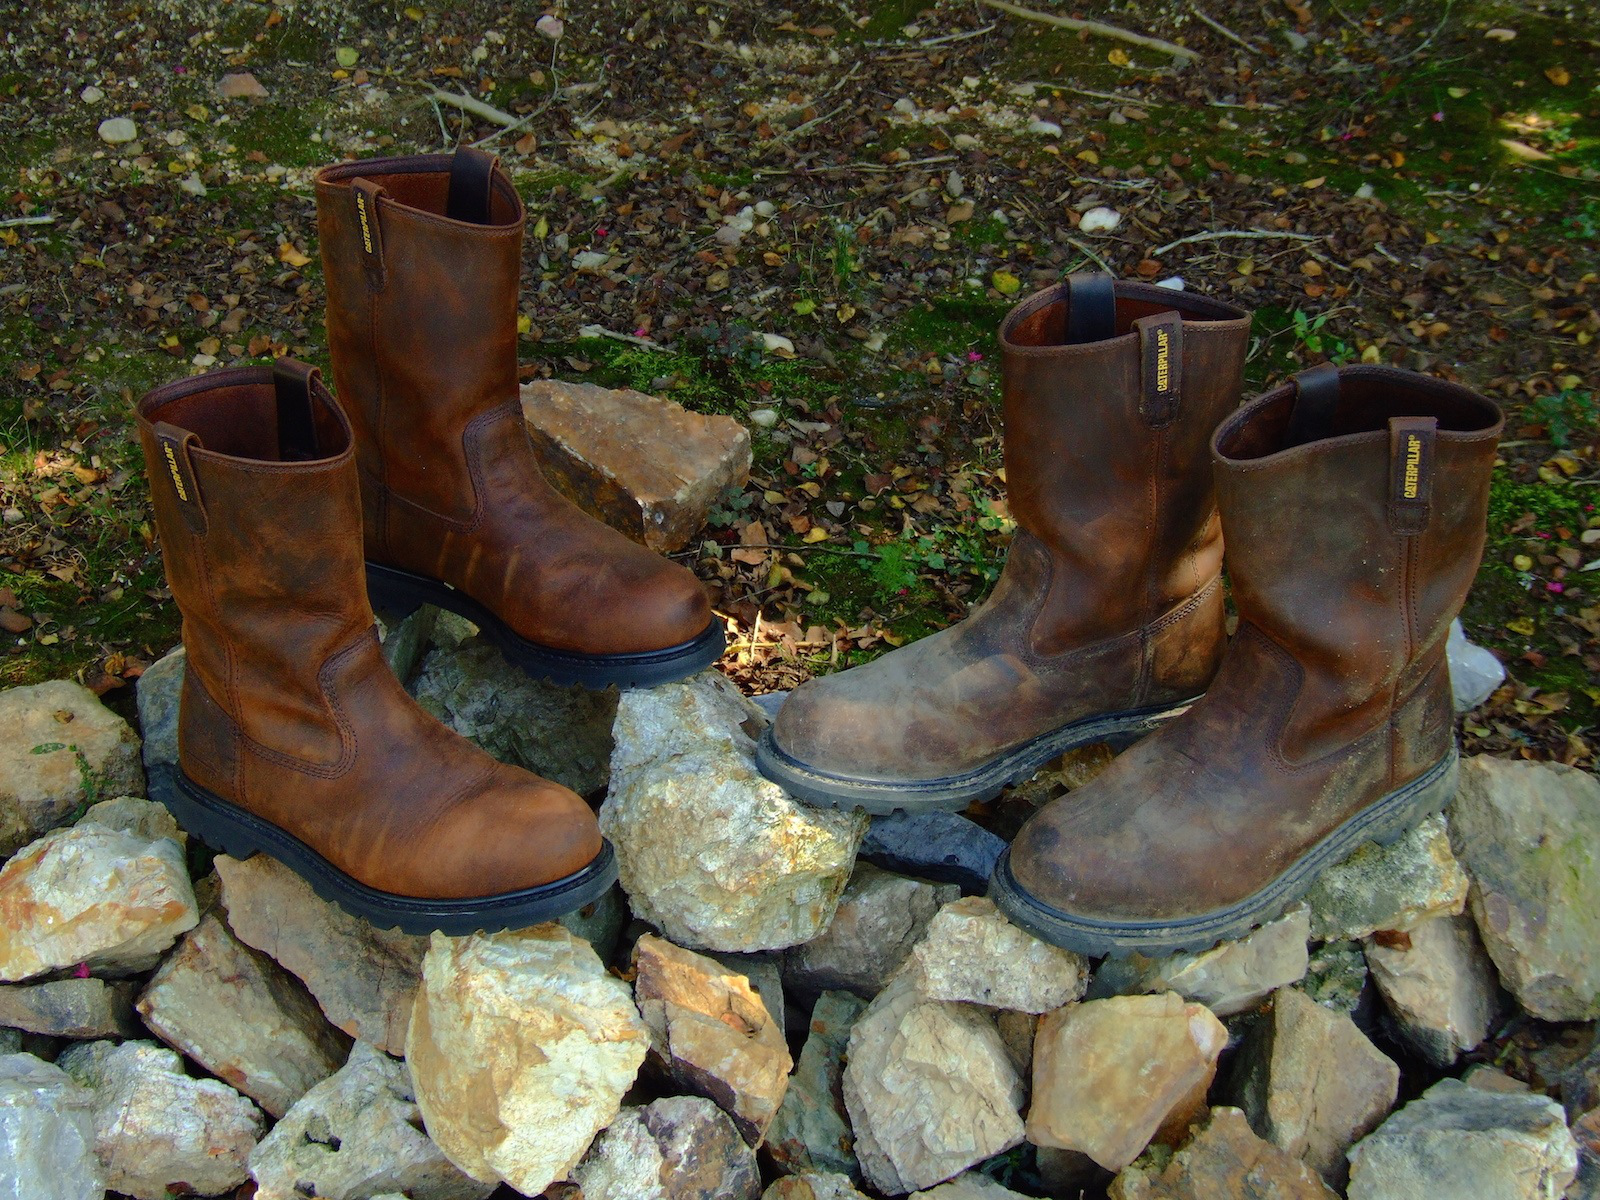 REVIEW: Caterpillar Revolver steel-toe pull-on boots take